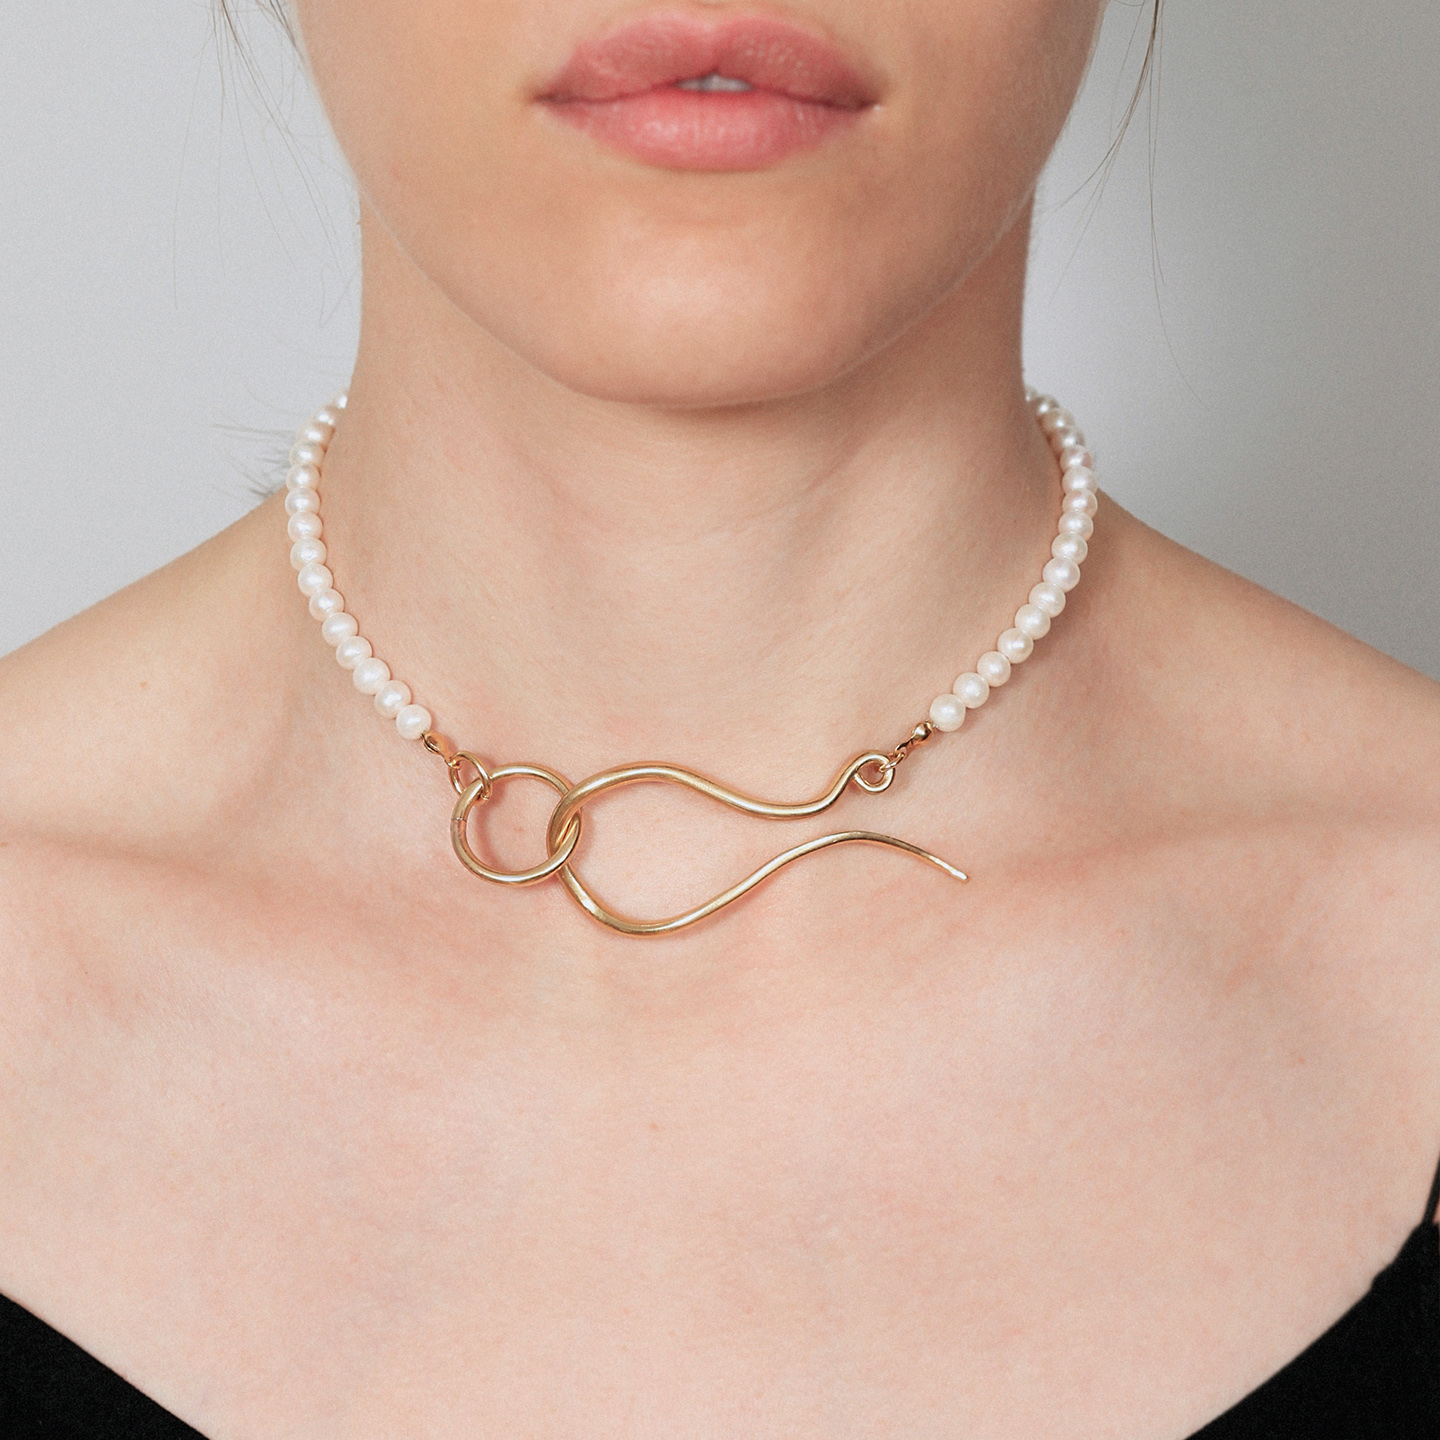 Pearl choker with original clasp